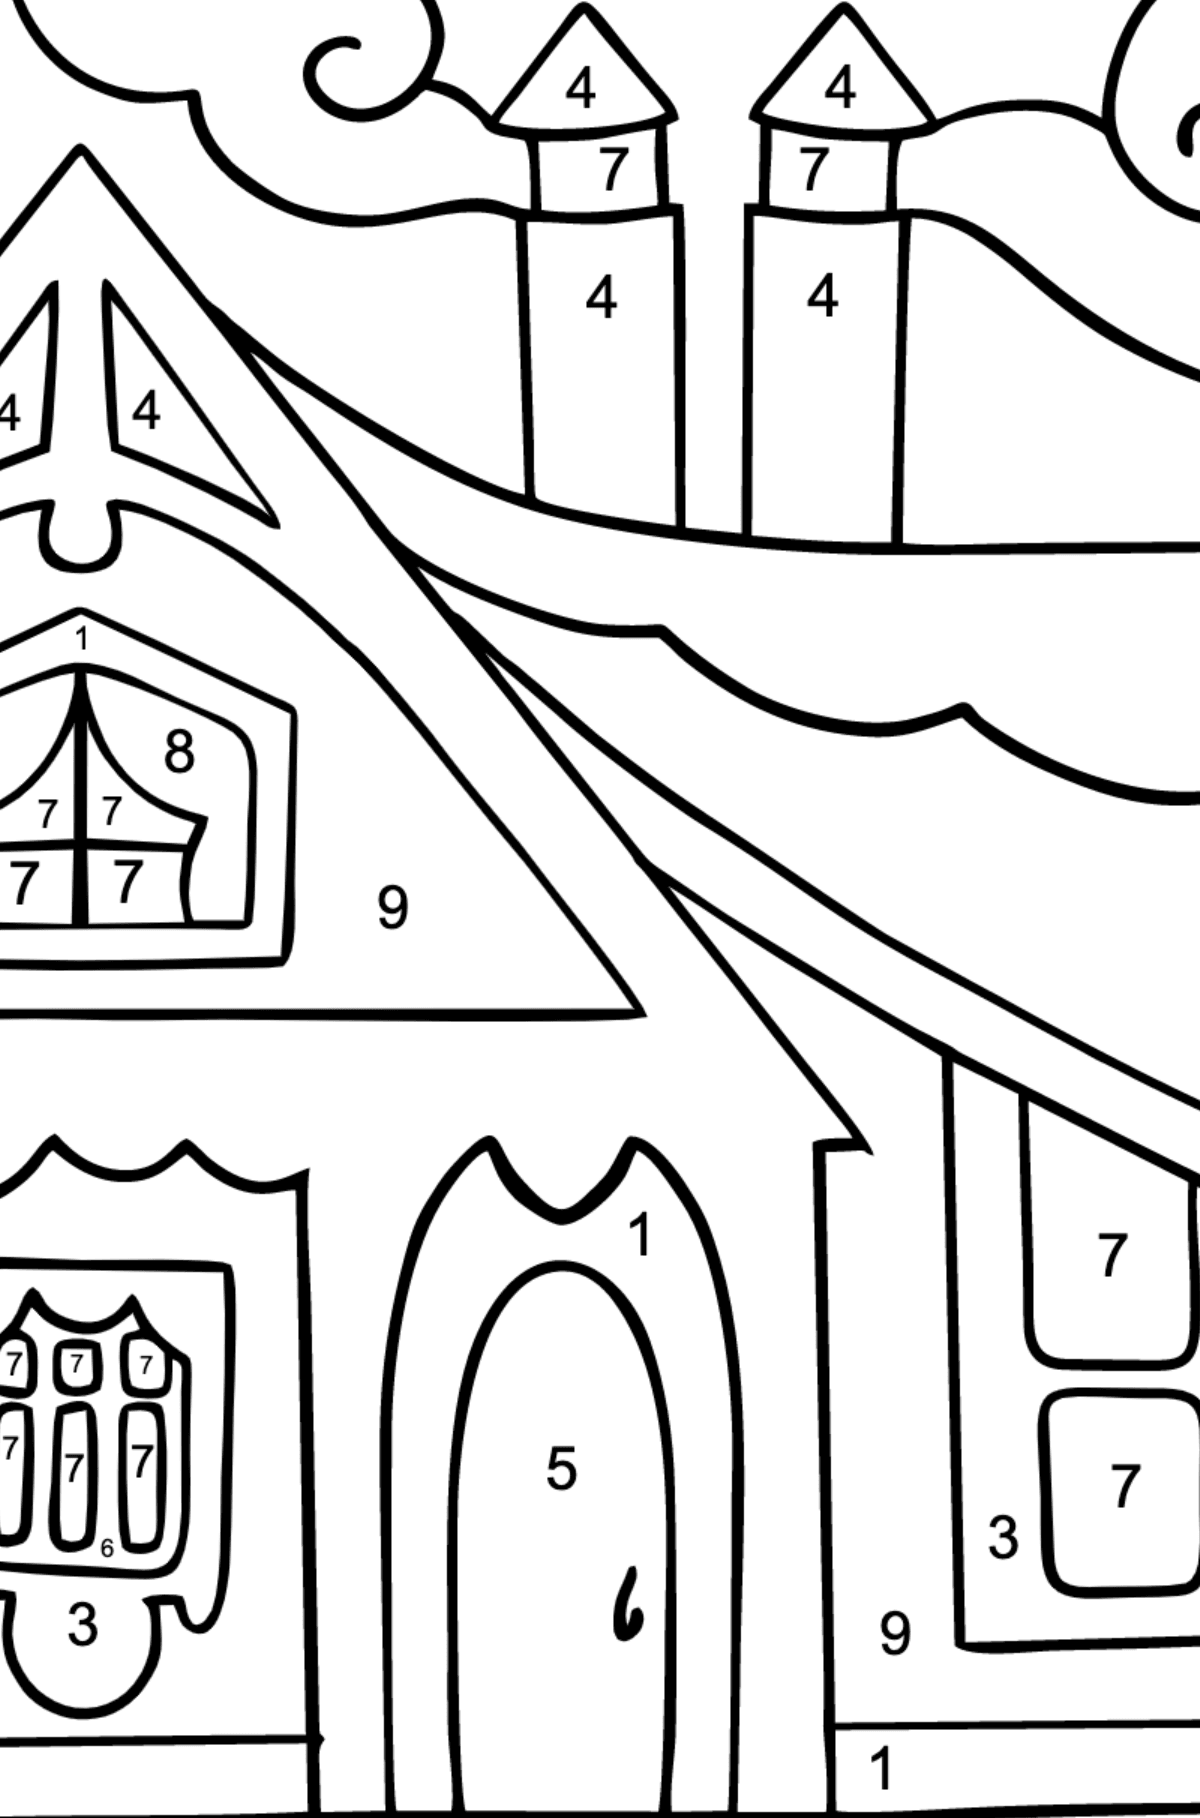 Complex Coloring Page - A Tiny House for Children  - Color by Number